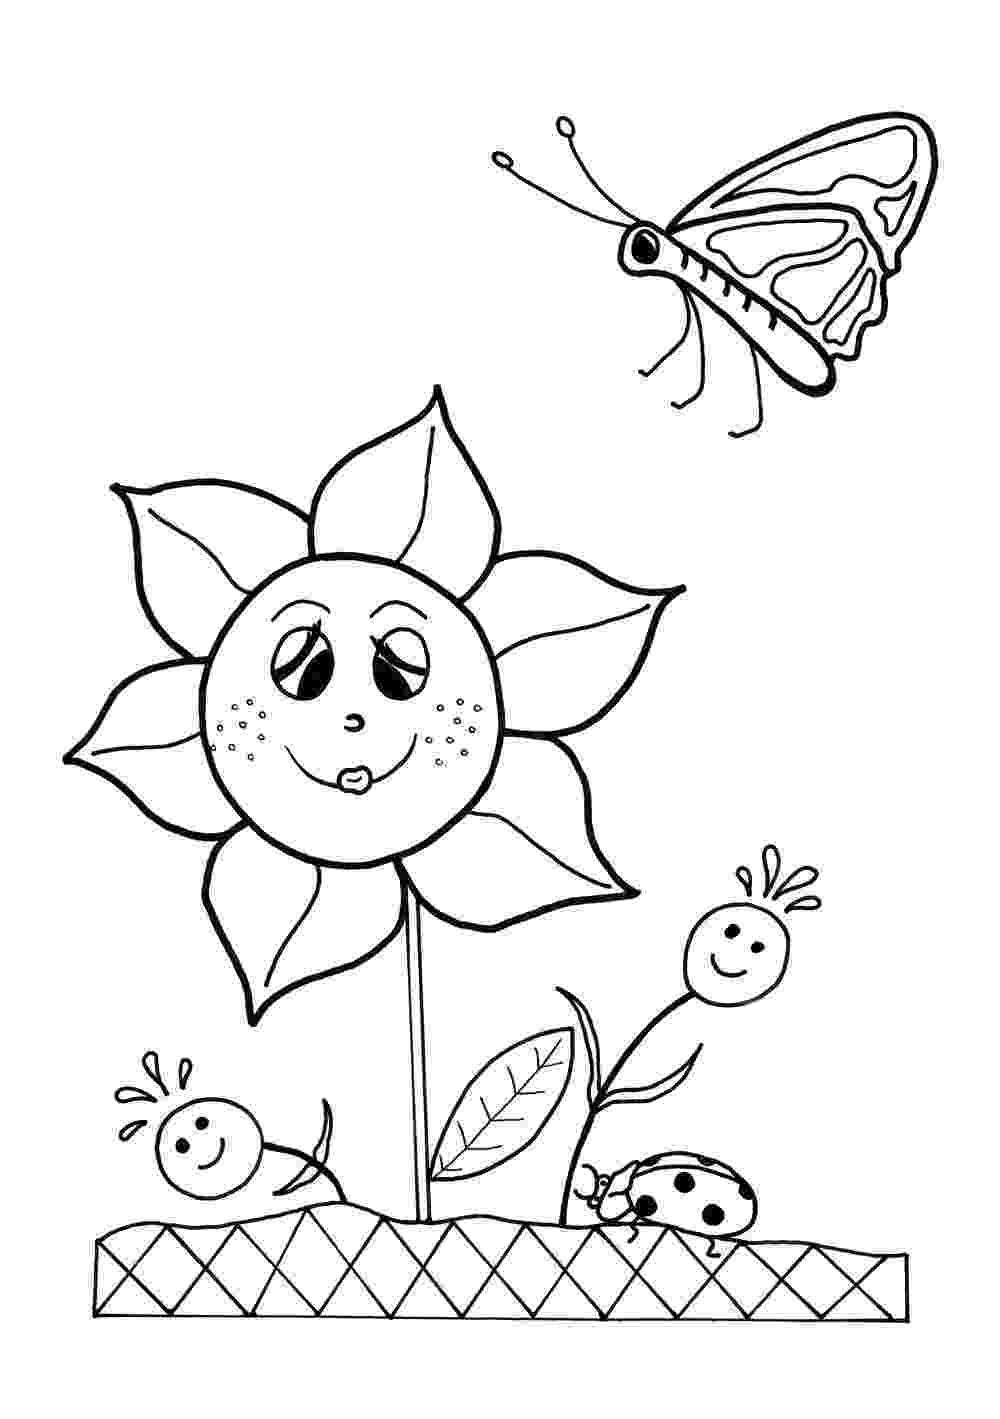 free printable coloring pages of flowers dancing flowers spring coloring sheet allfreekidscraftscom flowers free printable of coloring pages